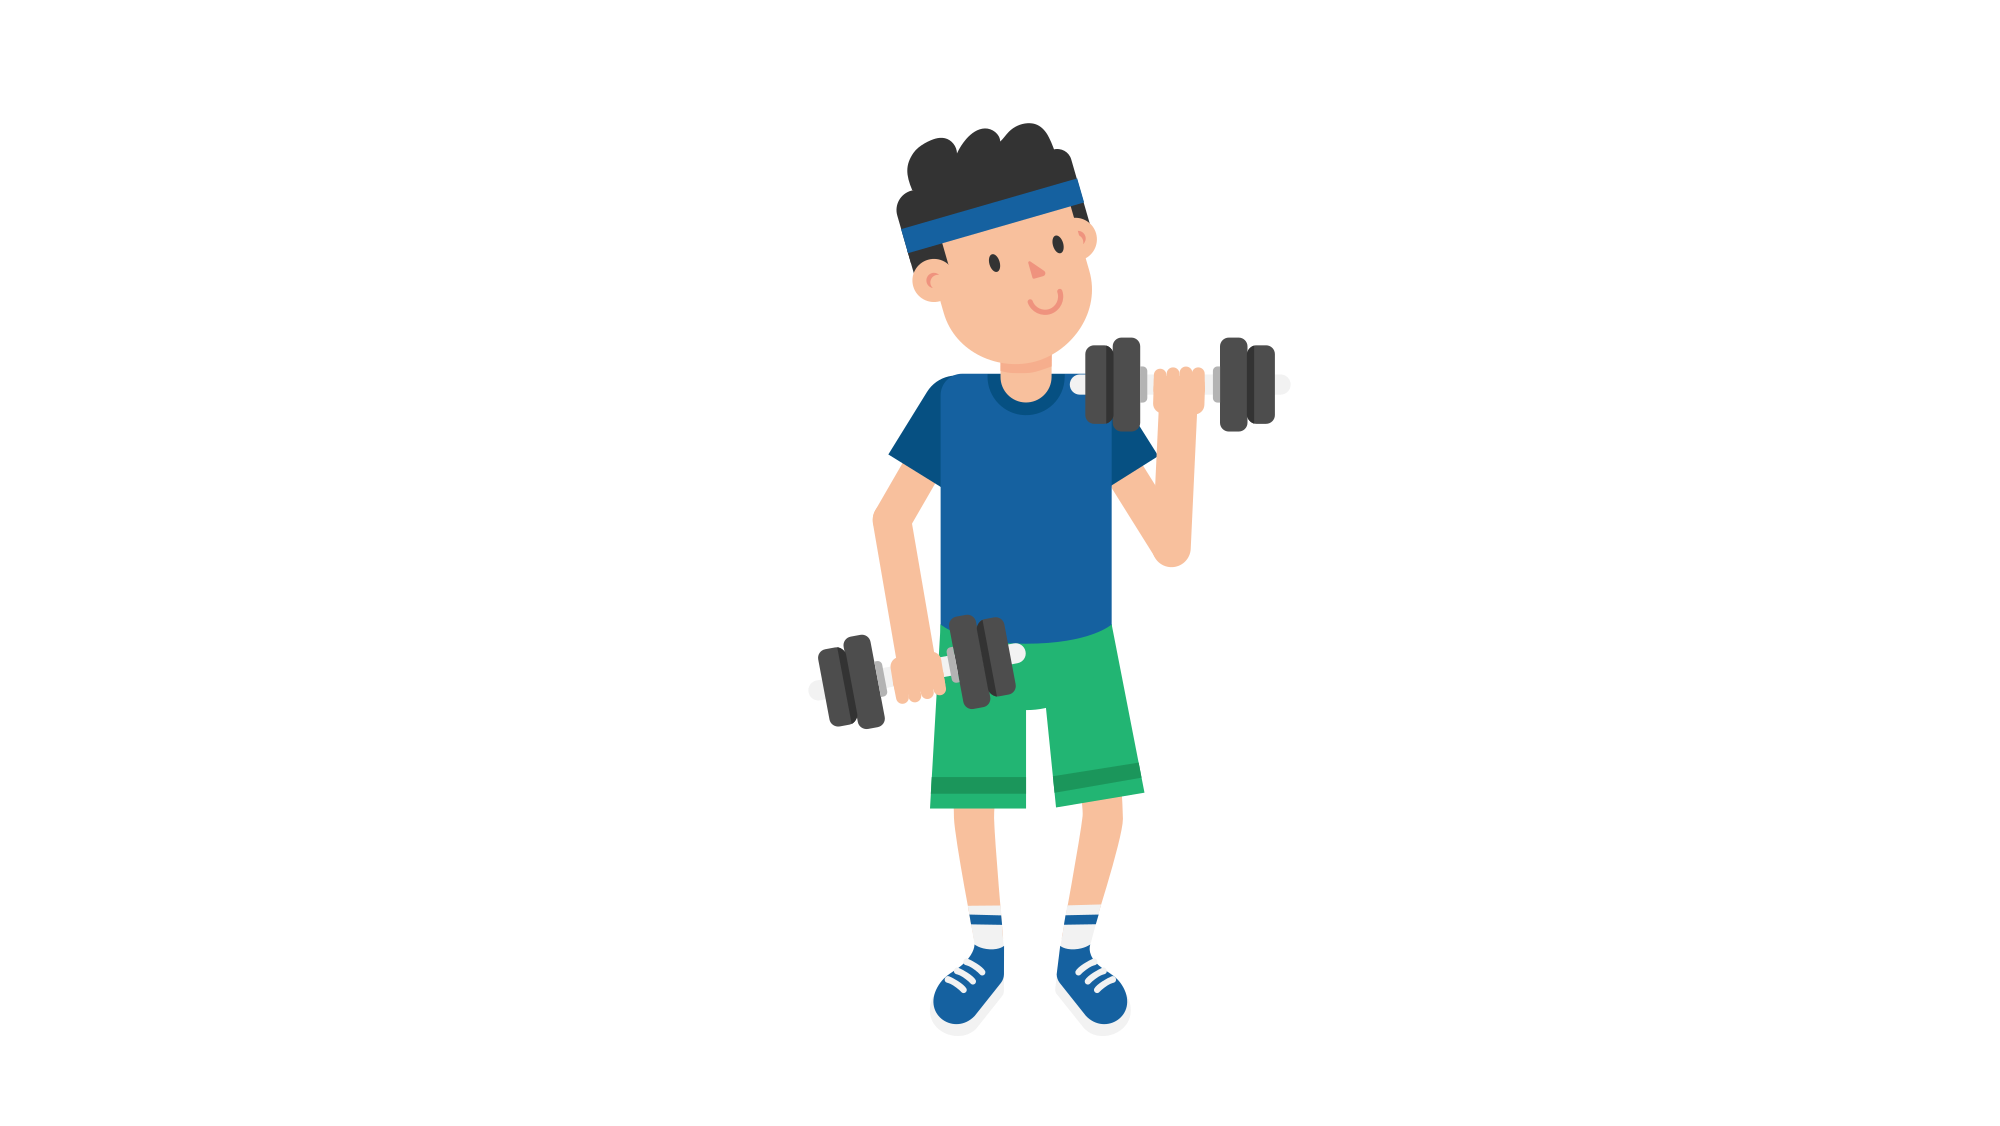 Cartoon barbell png. File man lifting dumbbells